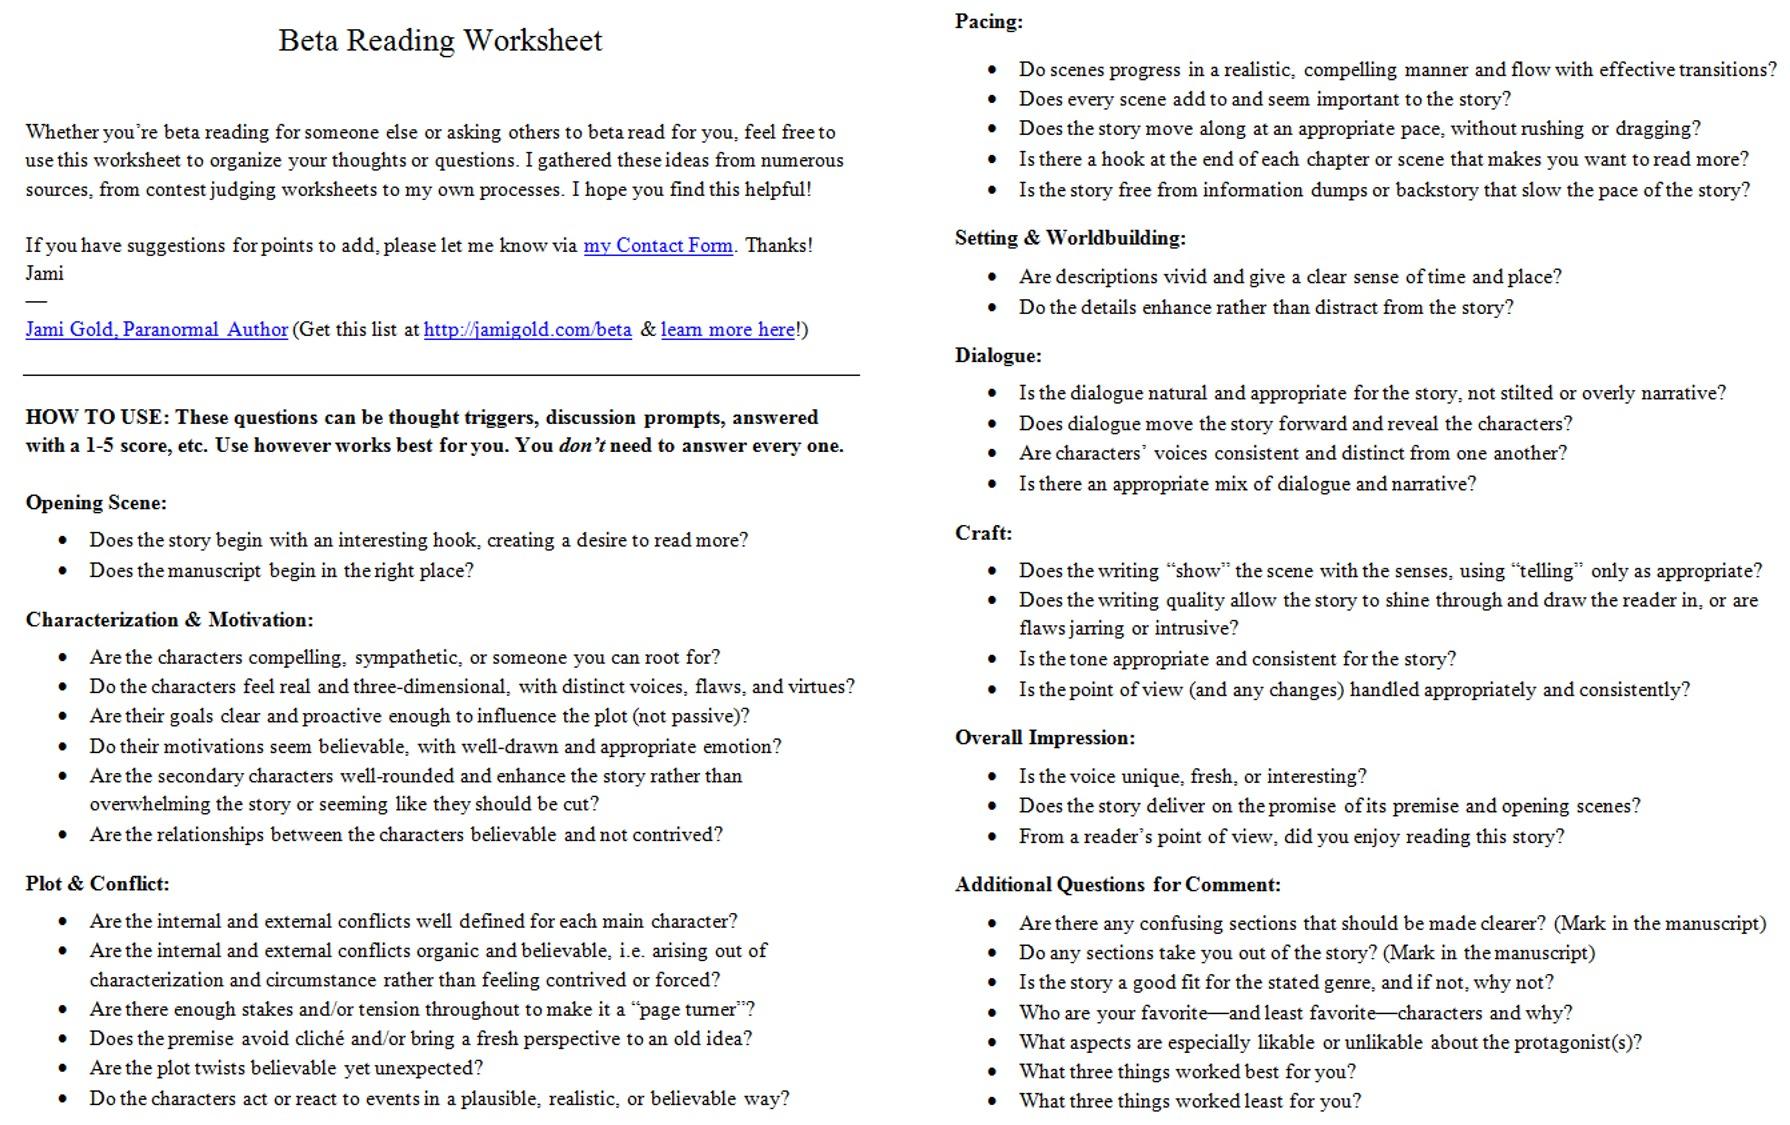 Weirdmailus  Seductive Worksheets For Writers  Jami Gold Paranormal Author With Hot Screen Shot Of The Twopage Beta Reading Worksheet With Delightful Percentages Of A Quantity Worksheet Also Phet Projectile Motion Worksheet In Addition Measuring In Inches Worksheet And Math Worksheets For Rd Grade Printable As Well As Variables Worksheet Middle School Additionally Line Plots Rd Grade Worksheets From Jamigoldcom With Weirdmailus  Hot Worksheets For Writers  Jami Gold Paranormal Author With Delightful Screen Shot Of The Twopage Beta Reading Worksheet And Seductive Percentages Of A Quantity Worksheet Also Phet Projectile Motion Worksheet In Addition Measuring In Inches Worksheet From Jamigoldcom